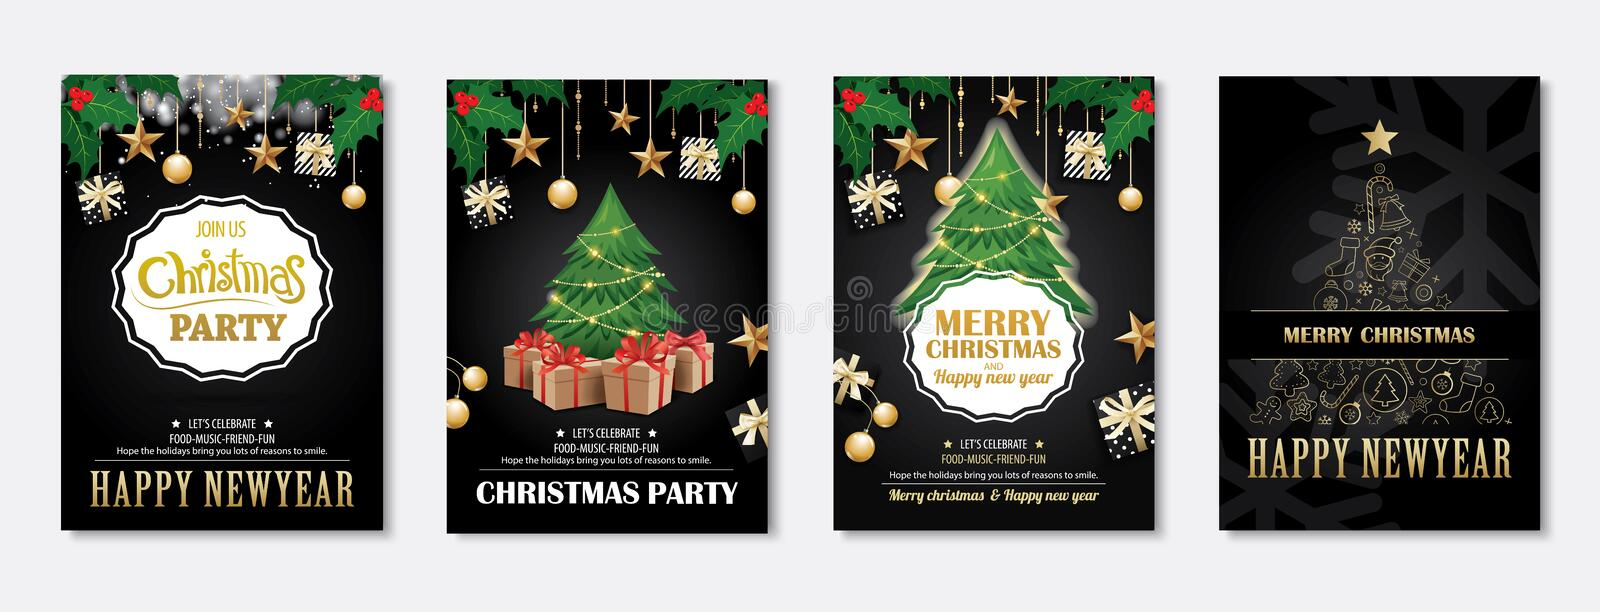 Merry christmas greeting card and party invitations on black background. Vector illustration element for happy new year flyer bro. Chure design stock illustration